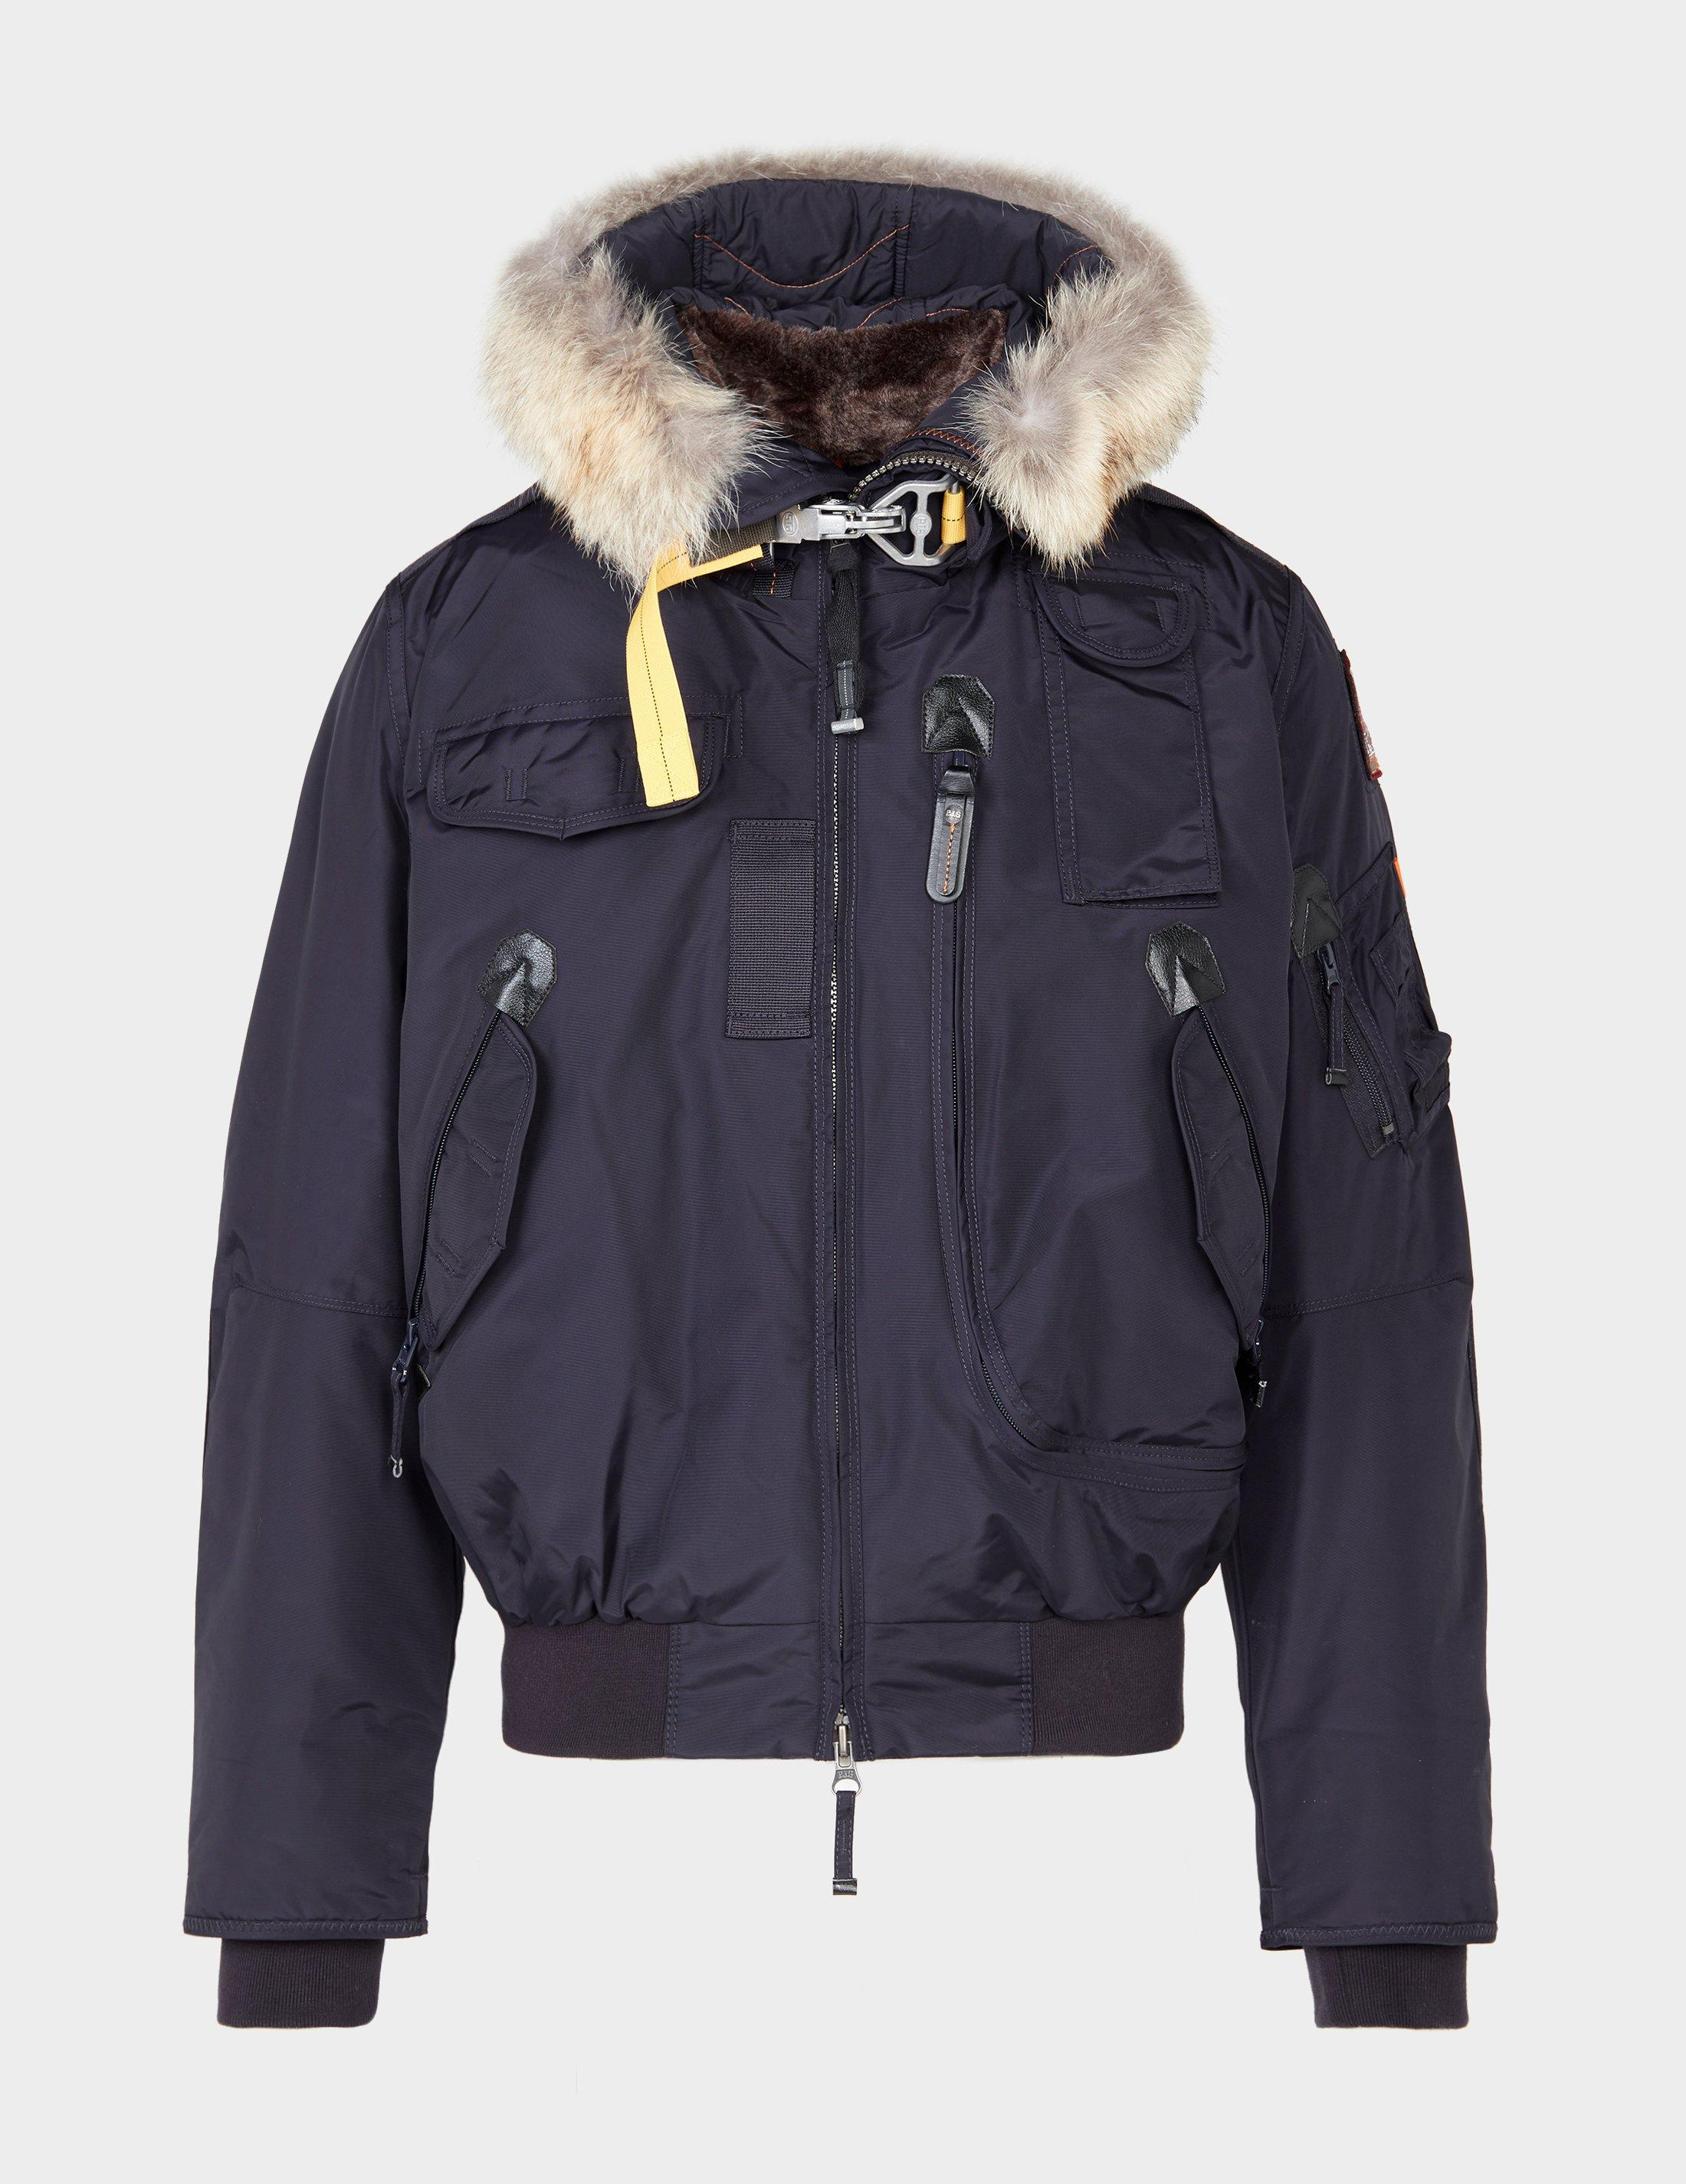 réplica de chaquetas moncler Shop online the latest Parajumpers collection of jackets and coats, t-shirts, knitwear and accessories for men, women and kids ...